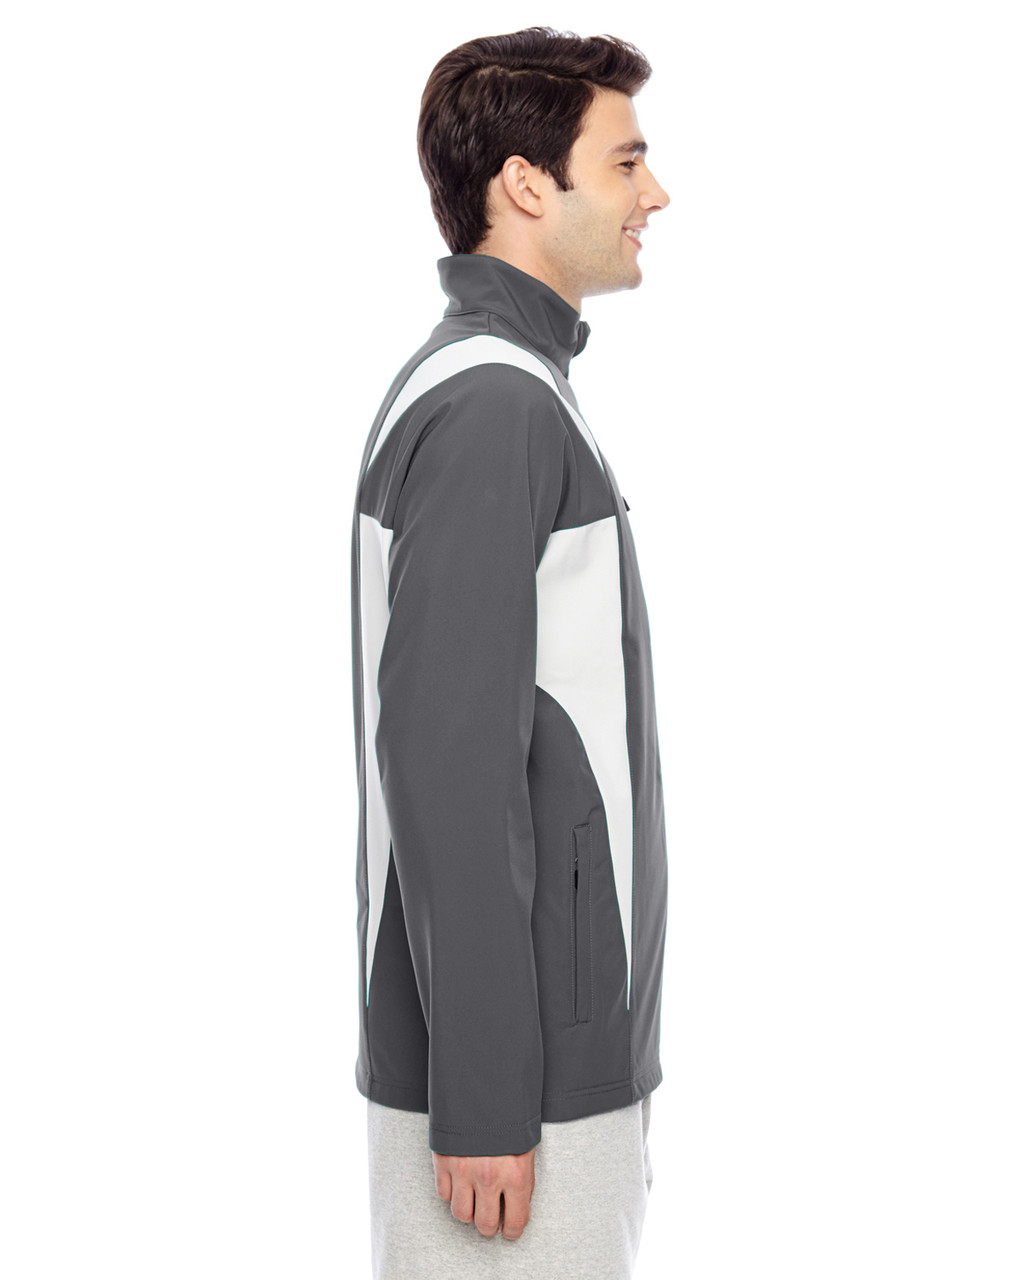 Sport Graphite/Sport Silver - Side, TT82 Team 365 Icon Colourblock Soft Shell Jacket  | BlankClothing.ca